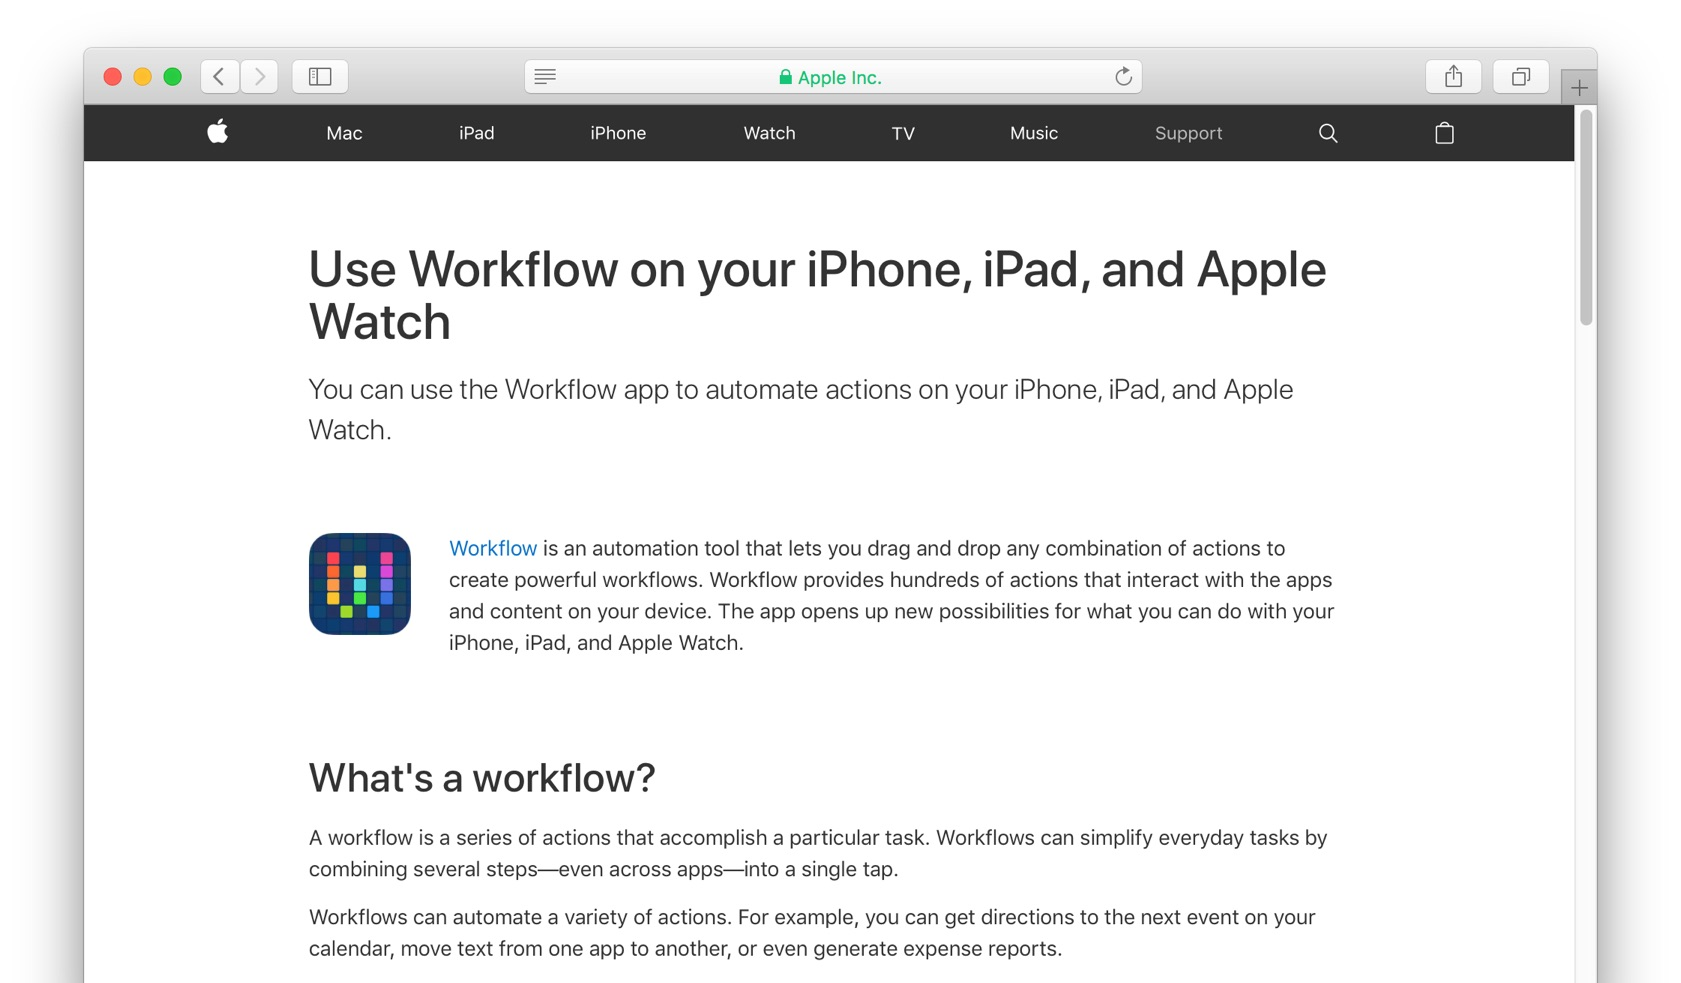 Use Workflow on your iPhone, iPad, and Apple Watch